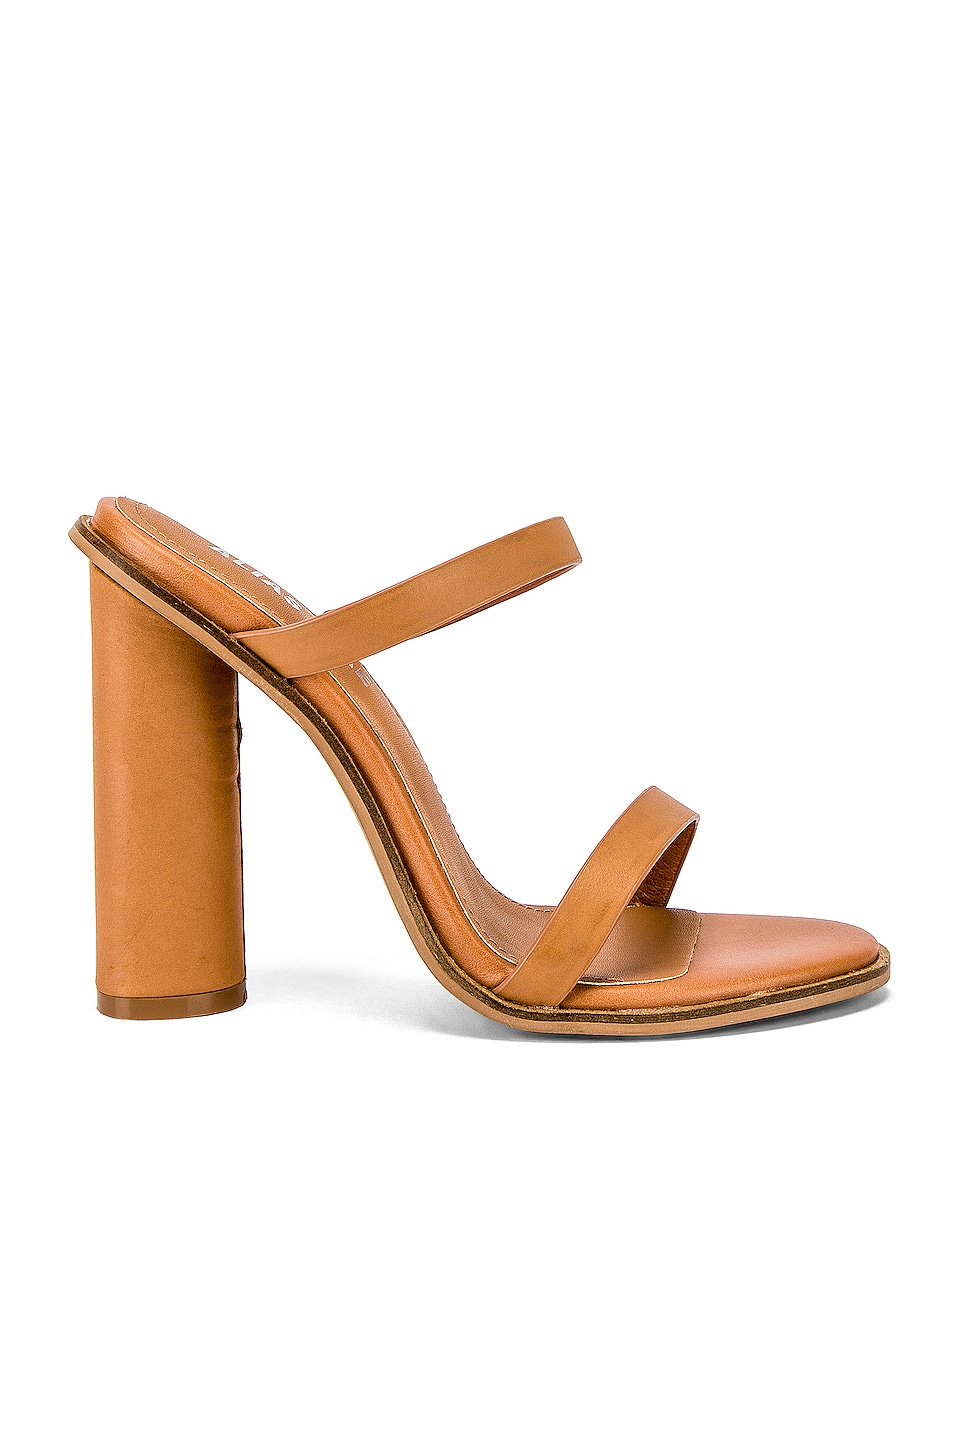 Alias Mae Amina Mule in Light Tan